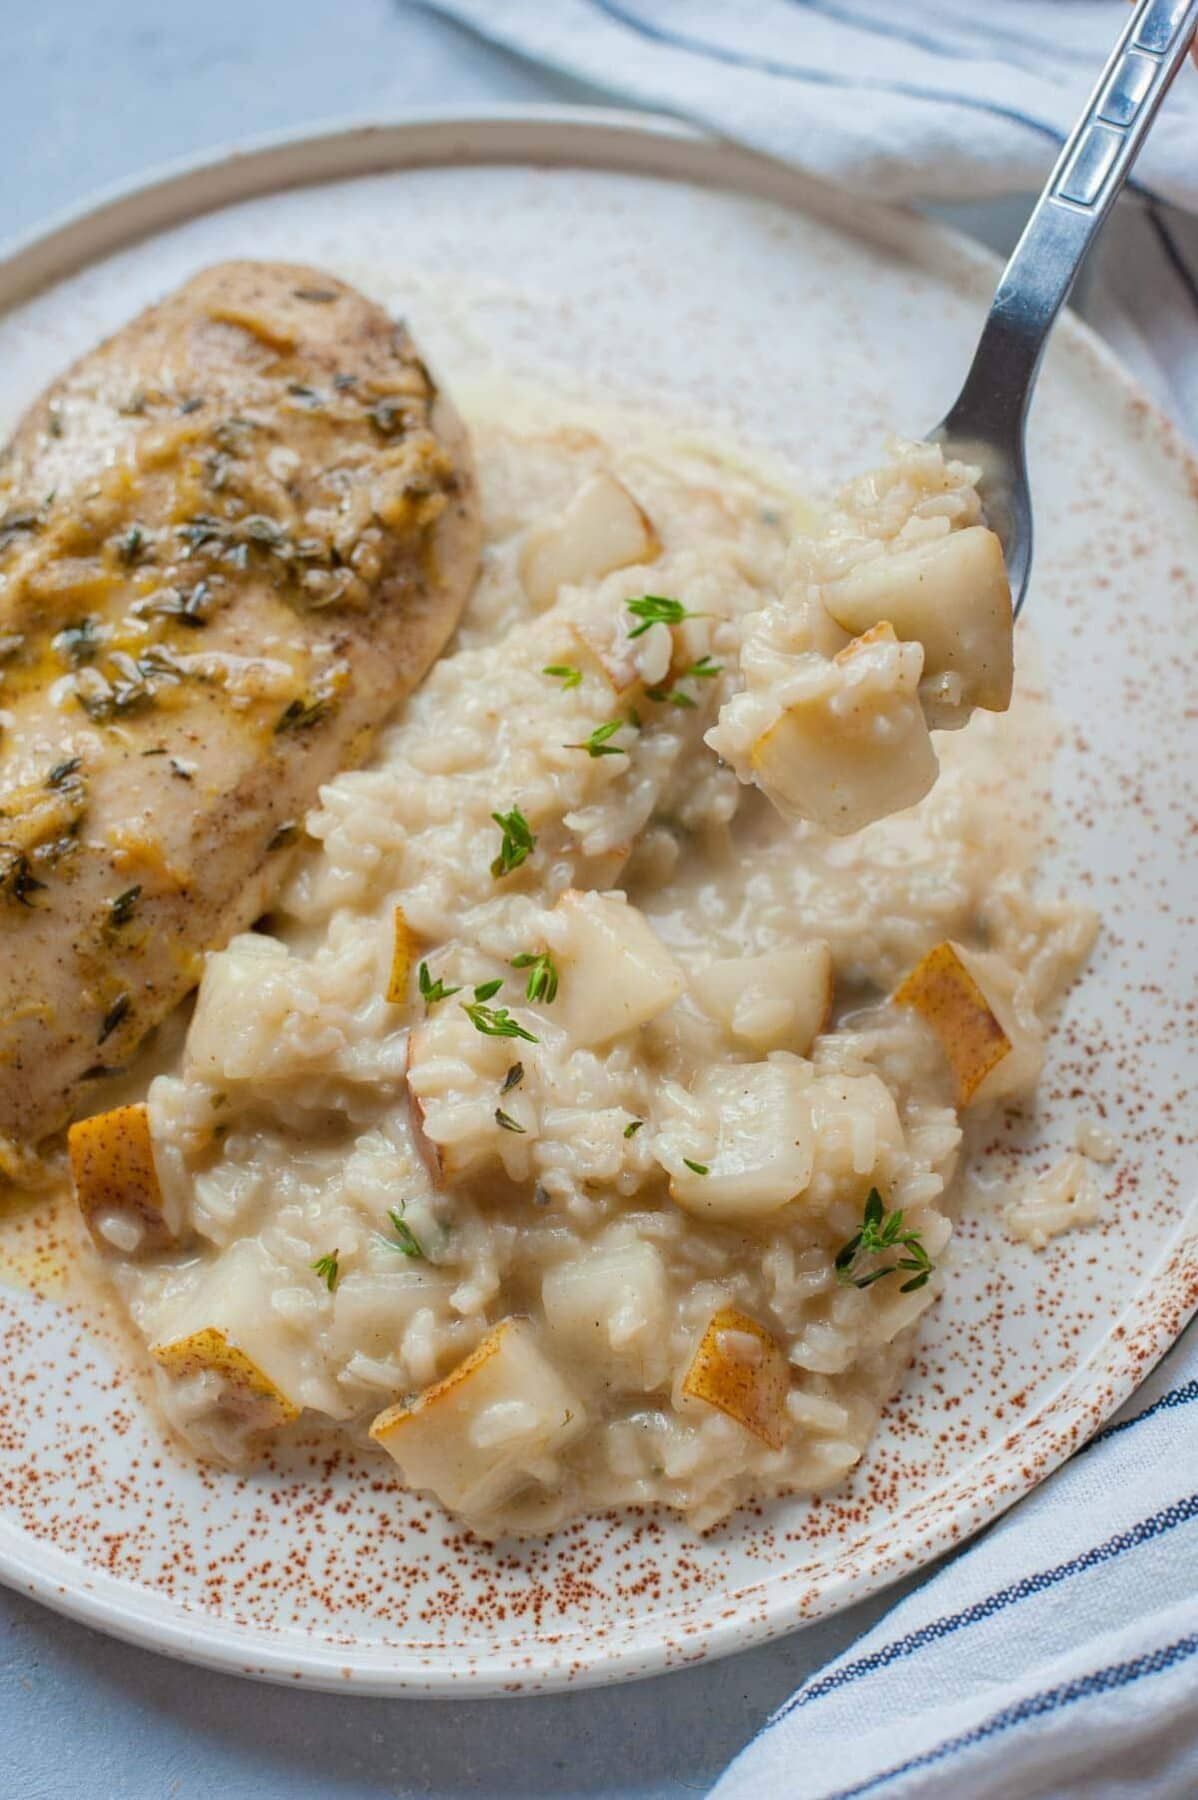 Pear risotto with gorgonzola on a plate with chicken breast on the side.